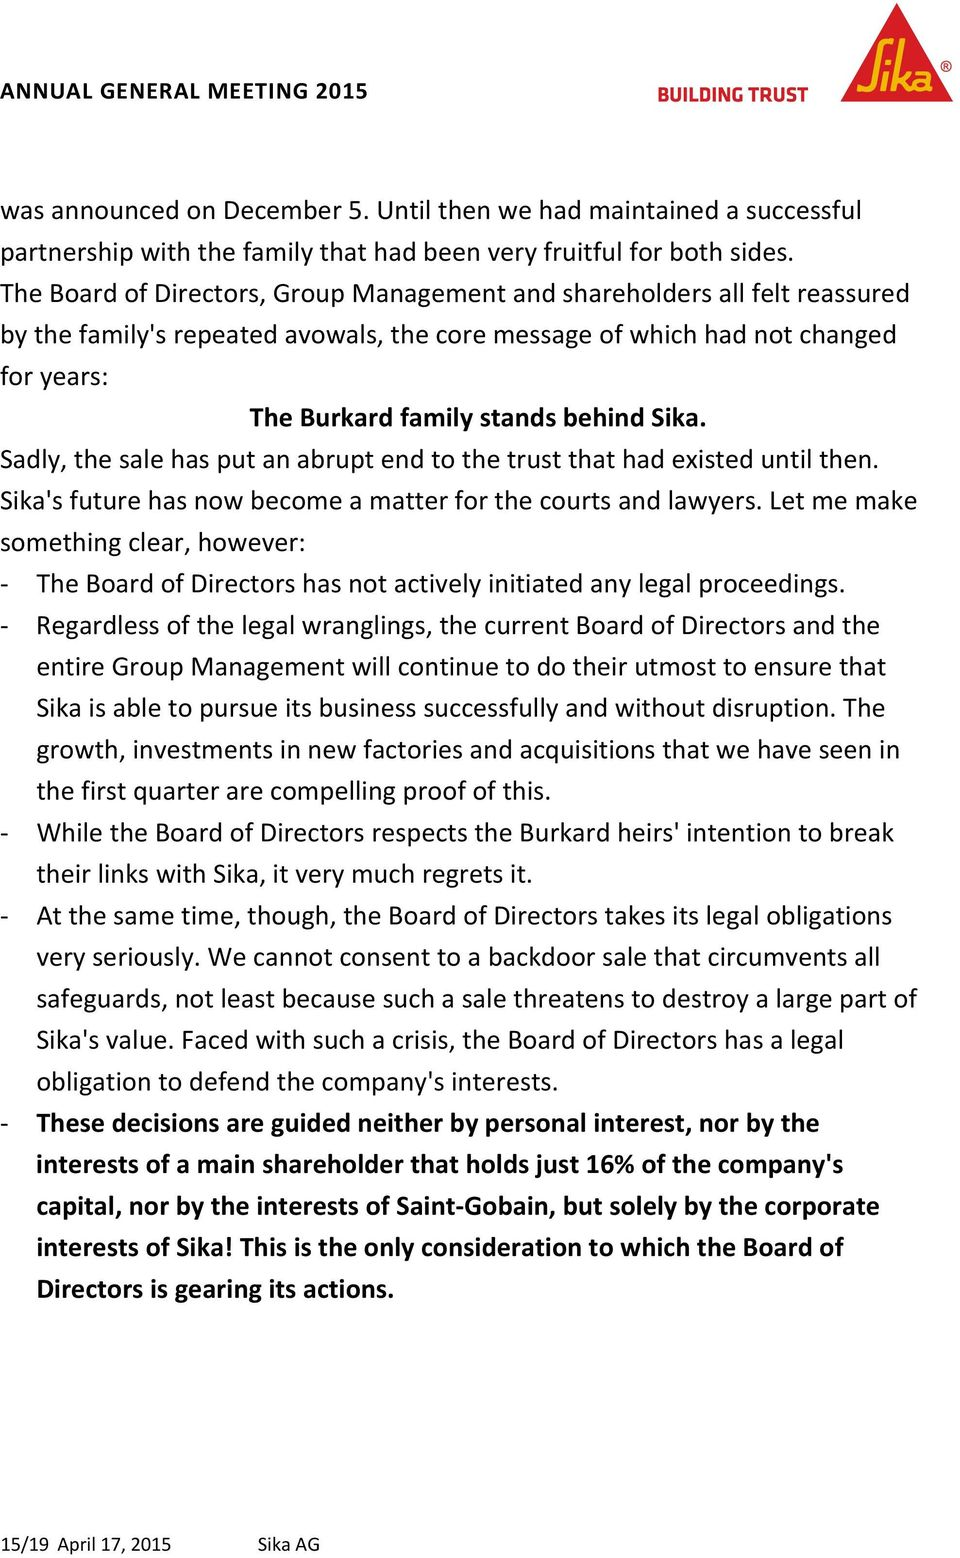 Sika. Sadly, the sale has put an abrupt end to the trust that had existed until then. Sika's future has now become a matter for the courts and lawyers.